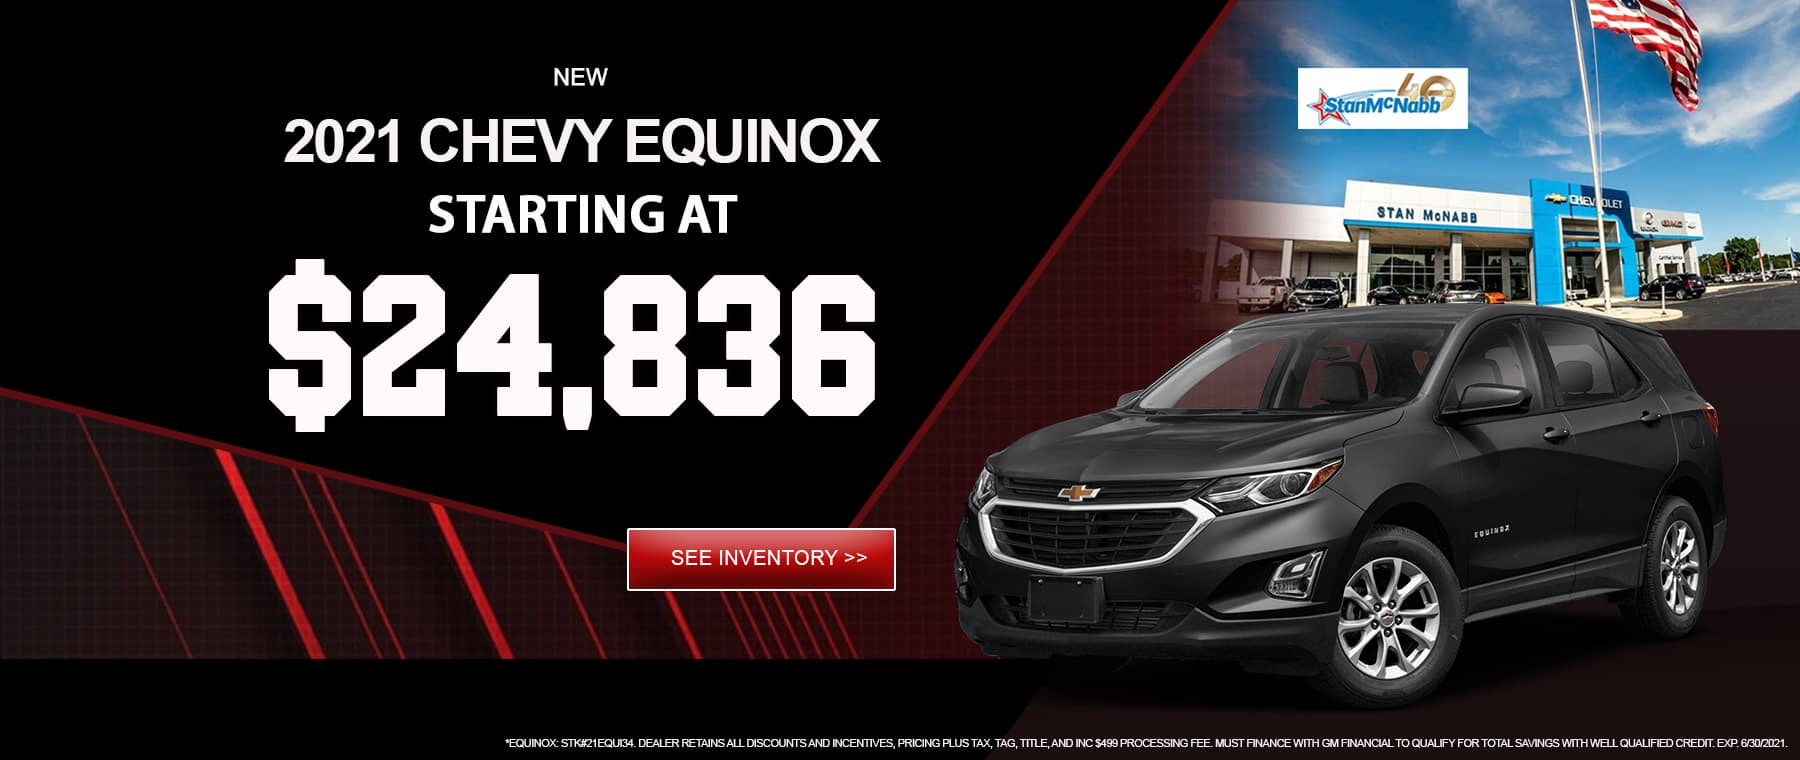 EQUINOX FOR SALE